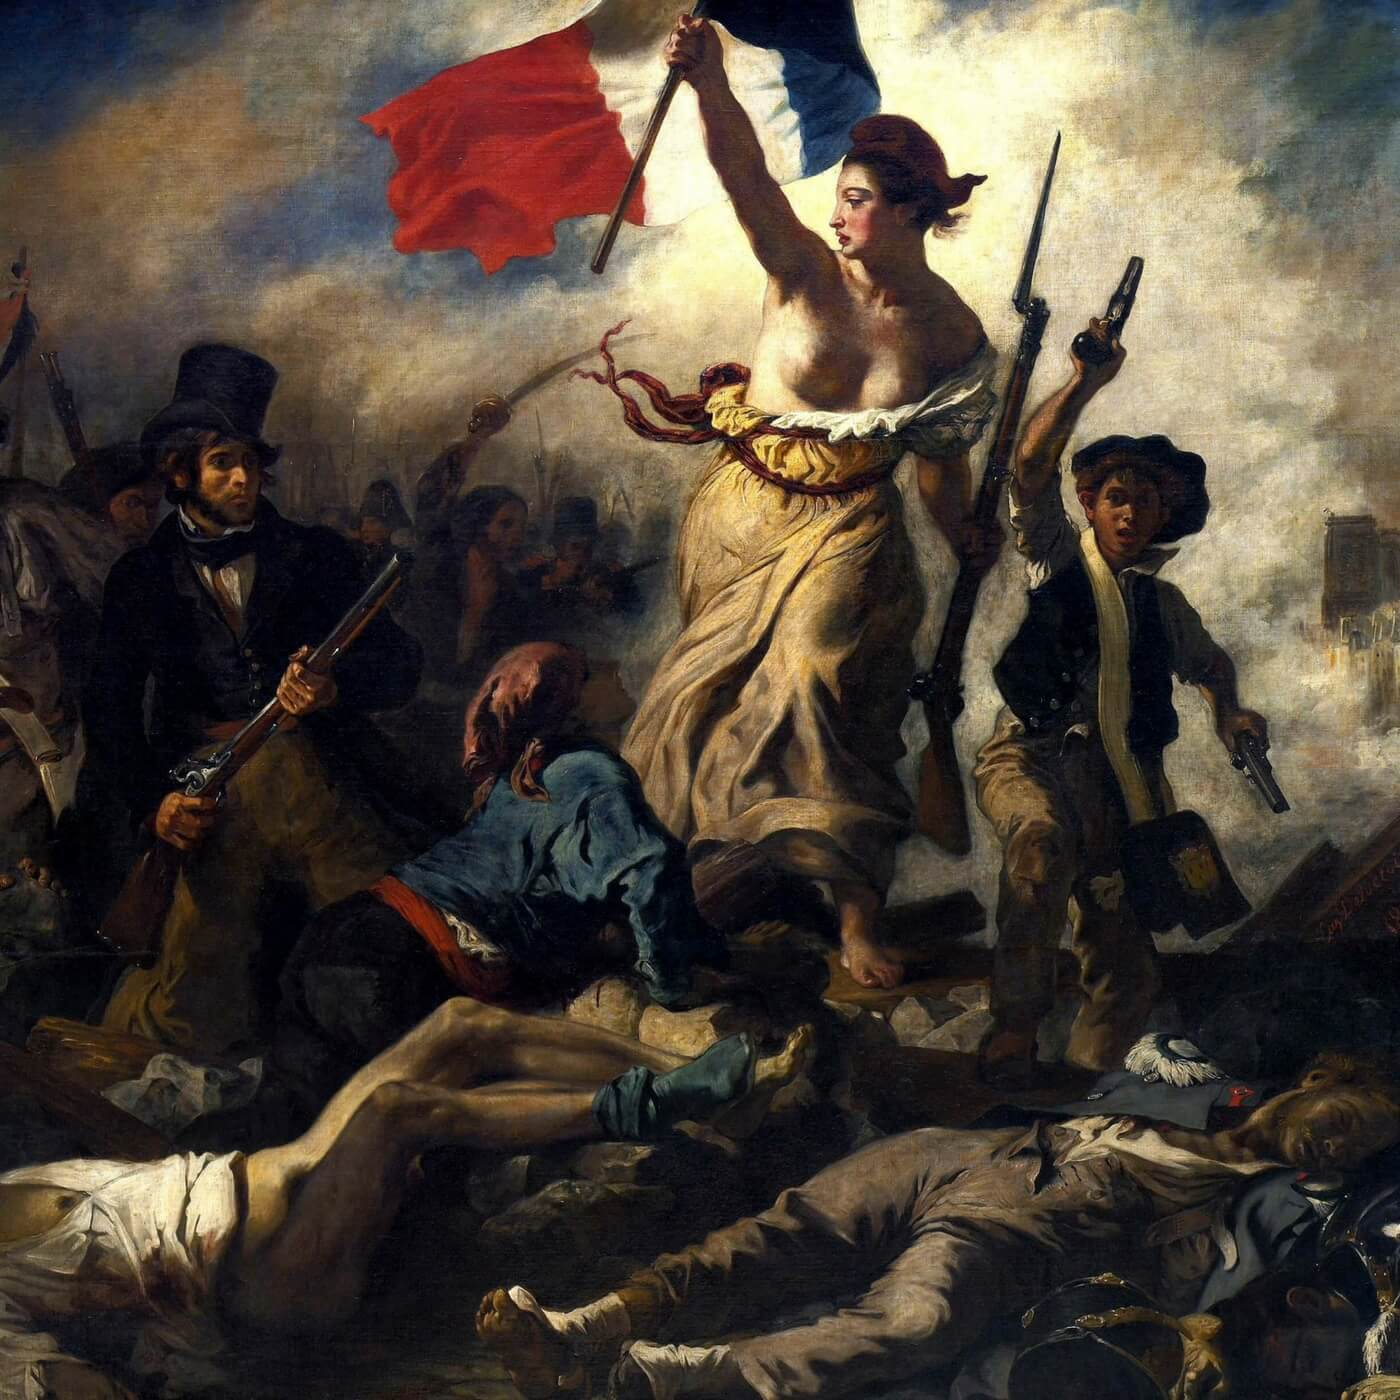 Liberty leading the people by Delacroix; the Hunchback of Notre Dame